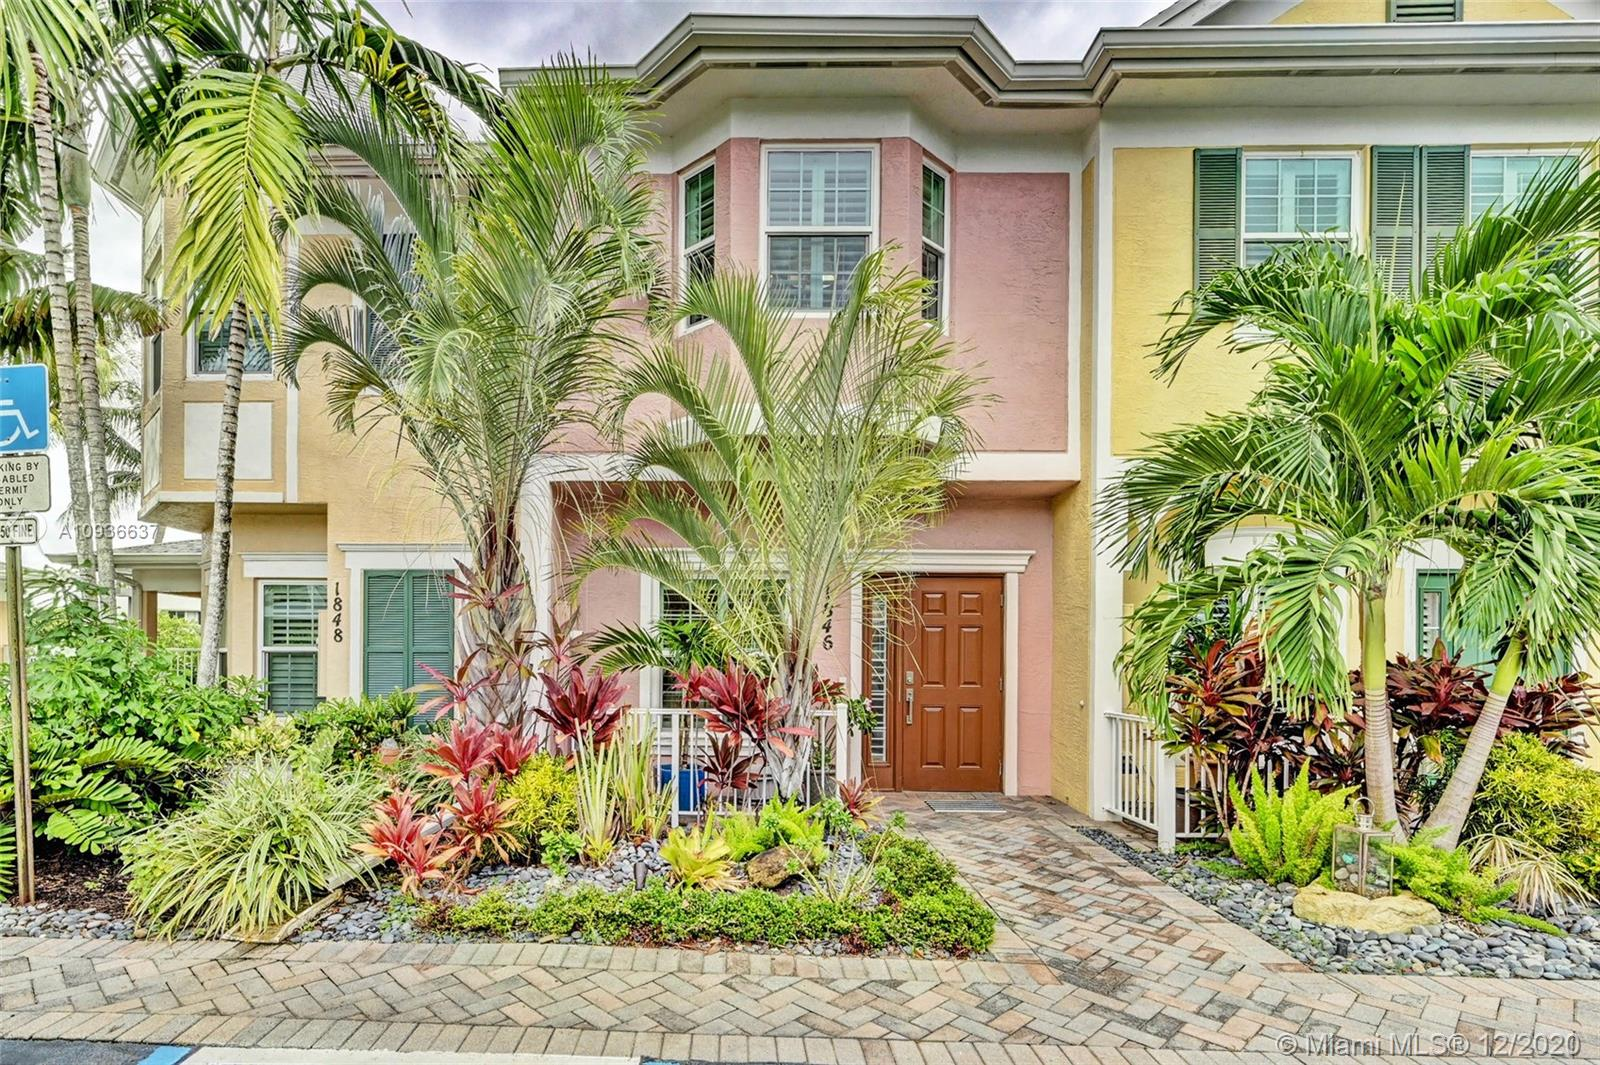 Beautifully renovated waterfront townhome is light & bright & ready for entertaining.  Located on the Middle River, walking distance to Wilton Dr. This Key West style home offers outstanding water views, community pool, dock, and plenty of open parking for guests!  Freshly painted, new central air conditioning(Feb 20), water heater (2019), new tile & crown molding throughout. This outstanding townhome offers a new remodeled kitchen with professional grade Kitchen Aid SS appliances, stylish backsplash, new quartz counter tops, sink, wine cooler & lighting, that opens to living & dining rooms with spectacular water views.  Impact windows & doors, new glass interior doors, Plantation shutters, motorized blinds. All baths have been updated. Attic space w ladder. Pet Friendly, Covered Parking